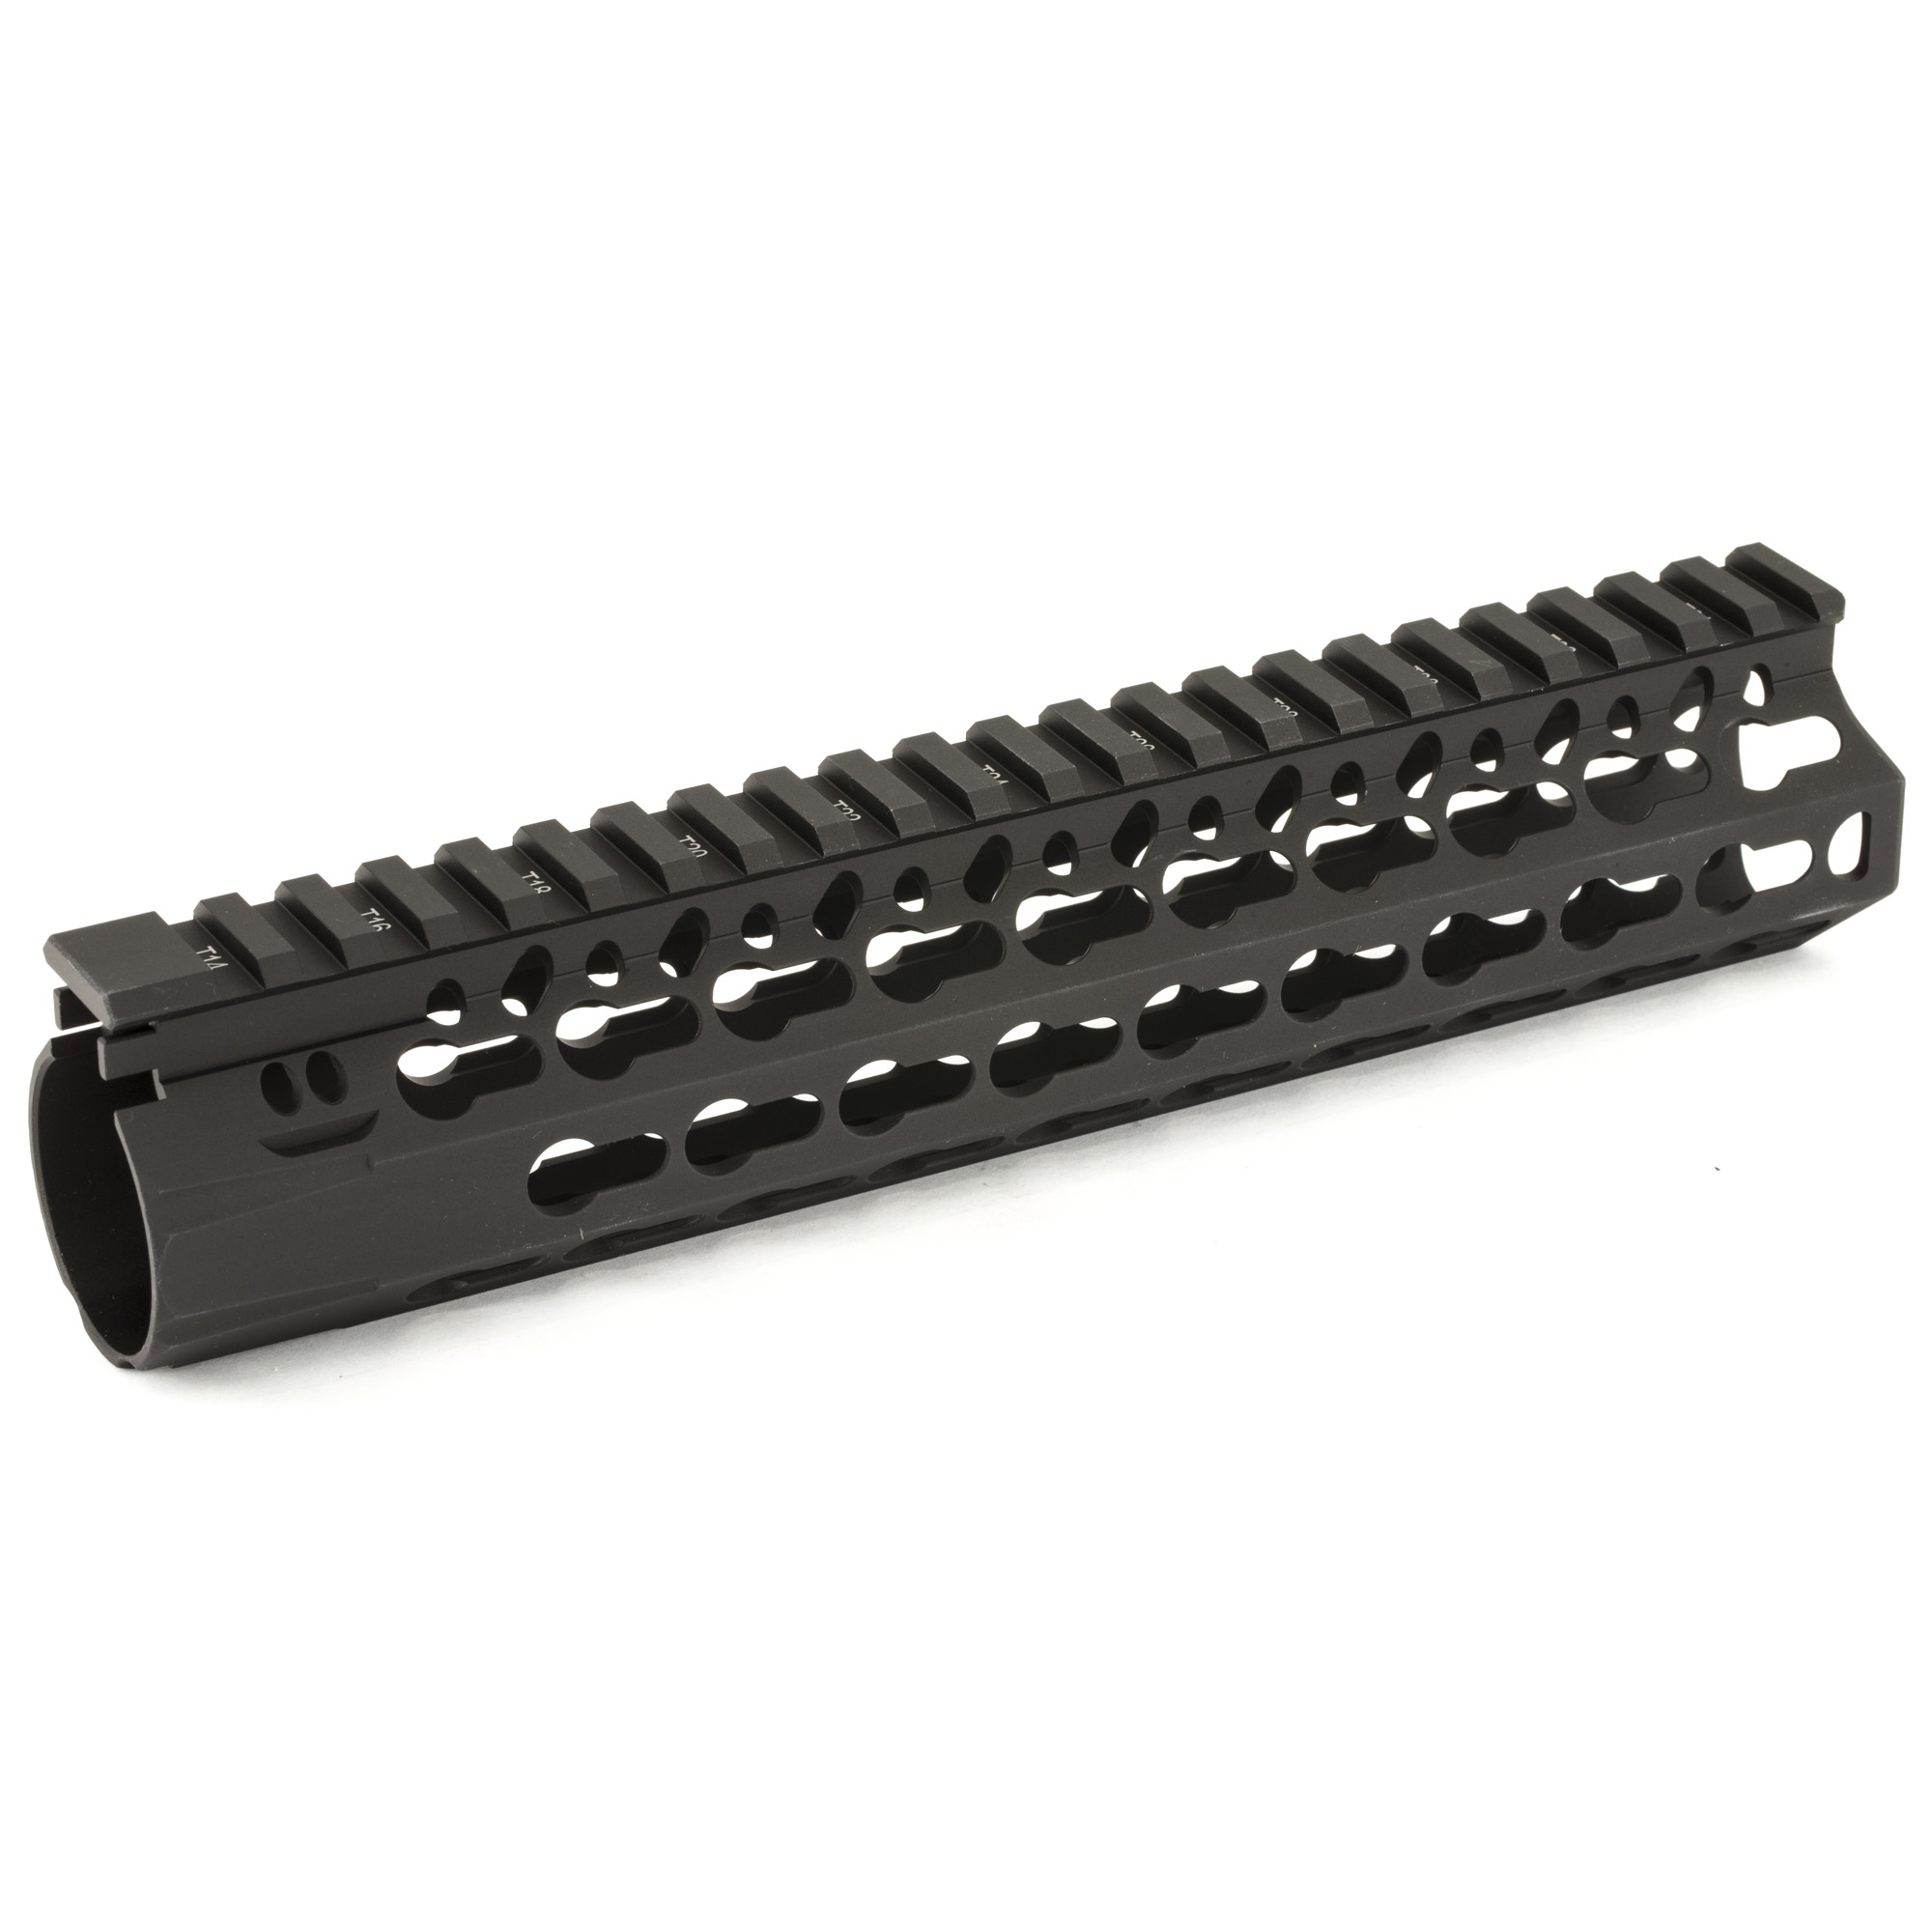 """Bravo Company's BCM KMR ALPHA 9"""""""" KeyMod Free Float Handguard"""" is manufactured from aluminum"""" it is lightweight yet durable. Also featuring a proprietary patent pending mounting"""" indexing and lock up system that mitigates 12:00 rail movement under heat generated from the barrel nut. It has a 1.3"""" inner diameter and is 1.5"""" outside flat to flat. The handguard flares forward (towards muzzle end) at the 3 and 9 O'clock positions approximately 1/4"""". The actual length when measured to flare is 9.4"""". The KeyMod(TM) interface system was developed by Eric Kincel (now the Director of BCMs' product development team) to work in parallel with the current picatinny system. In many applications it will advance modularity past the current 1913 rail system. In the most basic of applications the KeyMod(TM) system allows for universal modularity between various manufacturers of accessories"""" and accessory rails. A big win for the trigger puller. As the industry advances the modular accessories will mount directly to the KeyMod(TM) instead of picatinny"""" allowing for a lighter"""" cleaner"""" and less bulky weapon system. Includes BCM(R) KeyMod(TM) Sling Mount."""